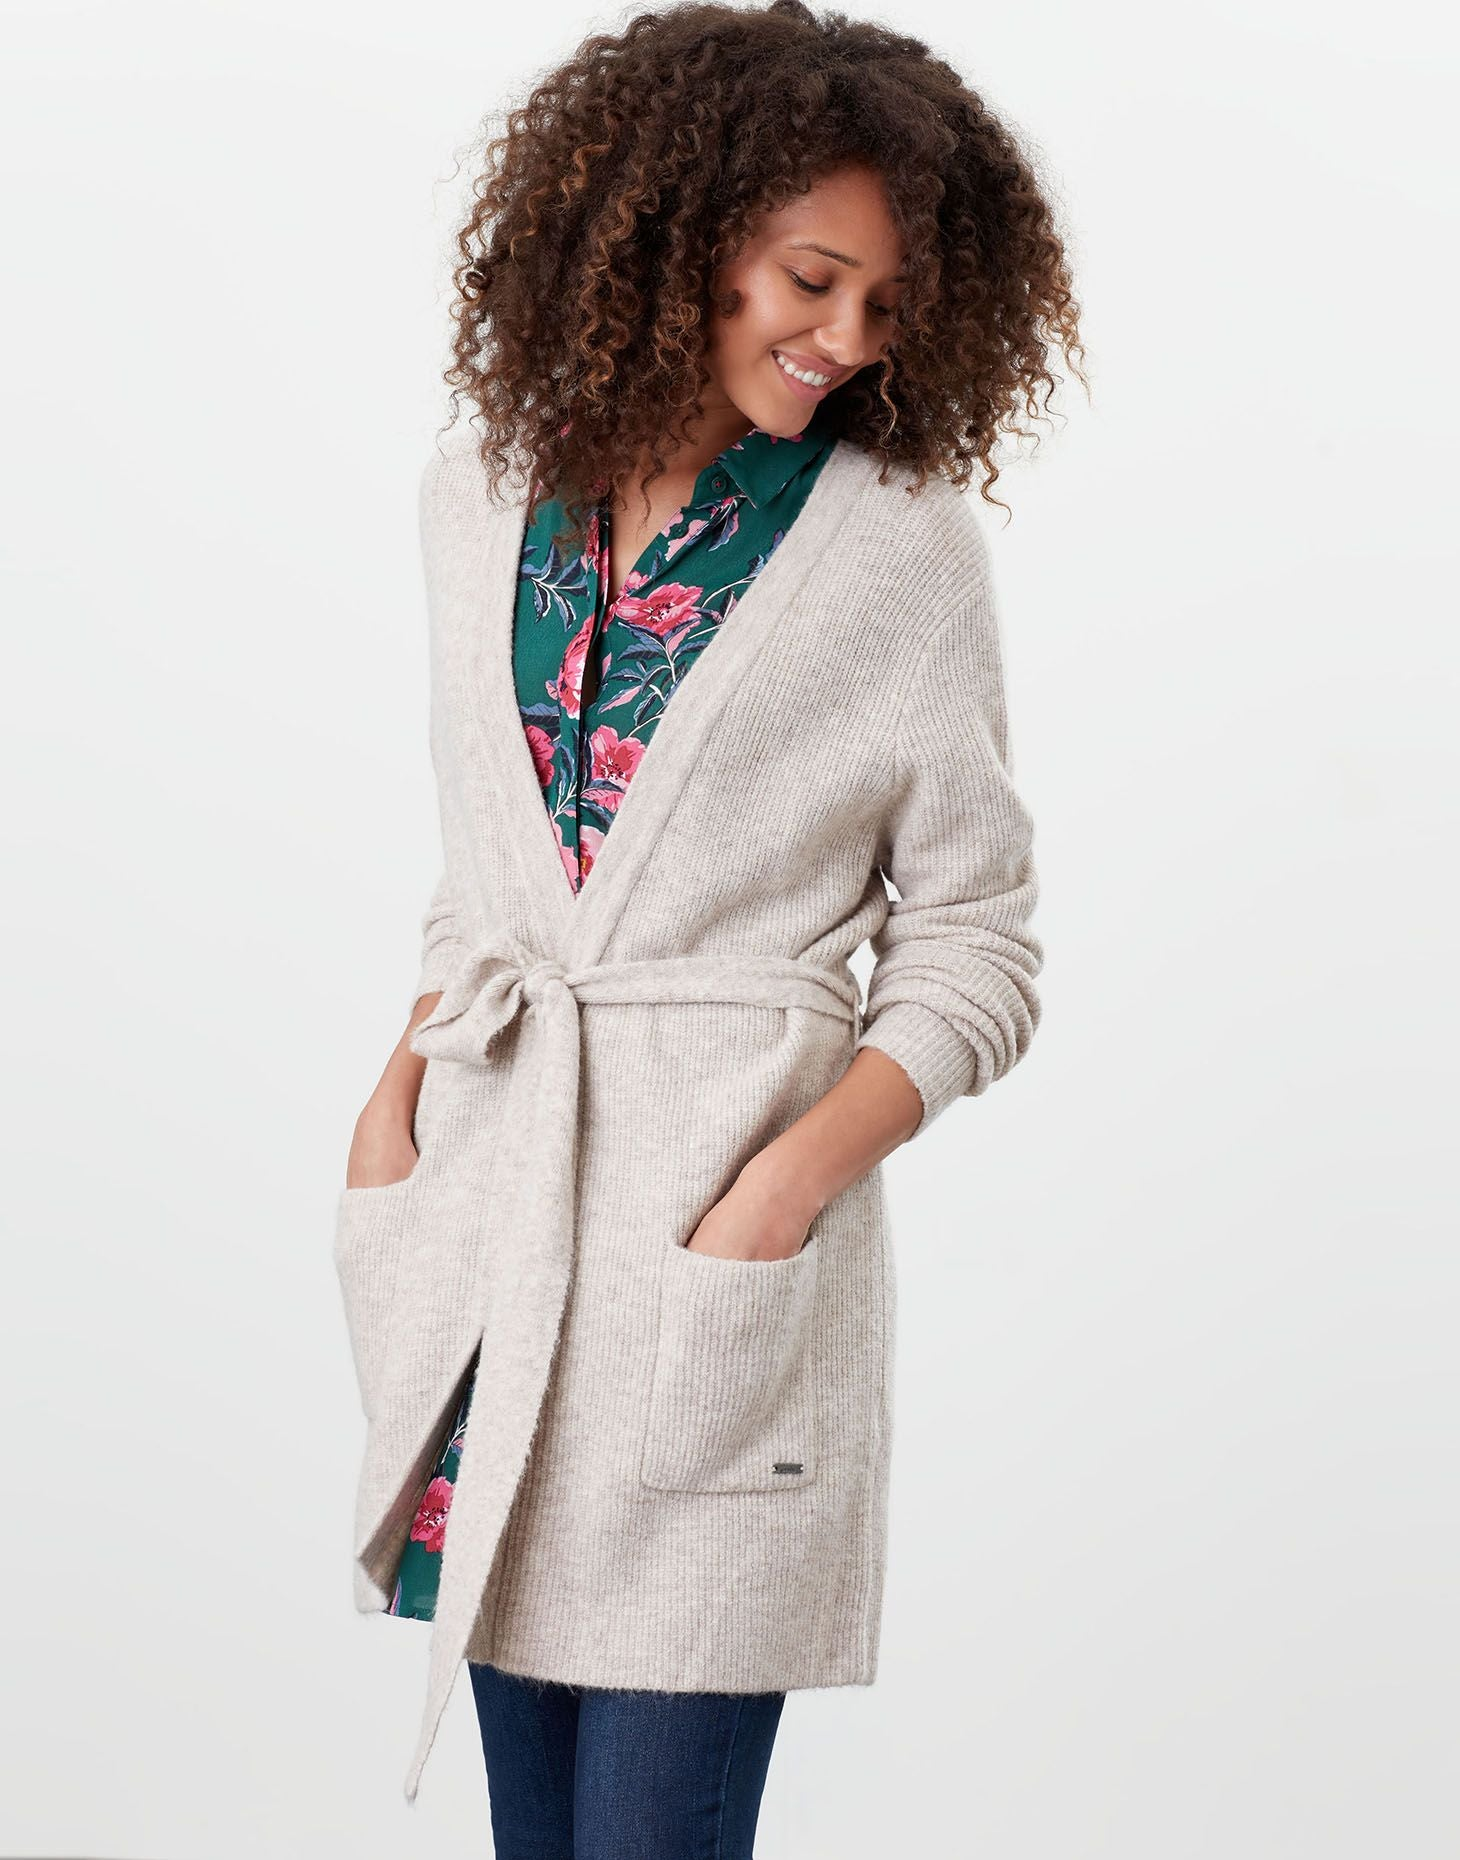 Alba Oat Knitted Cardigan with Belt